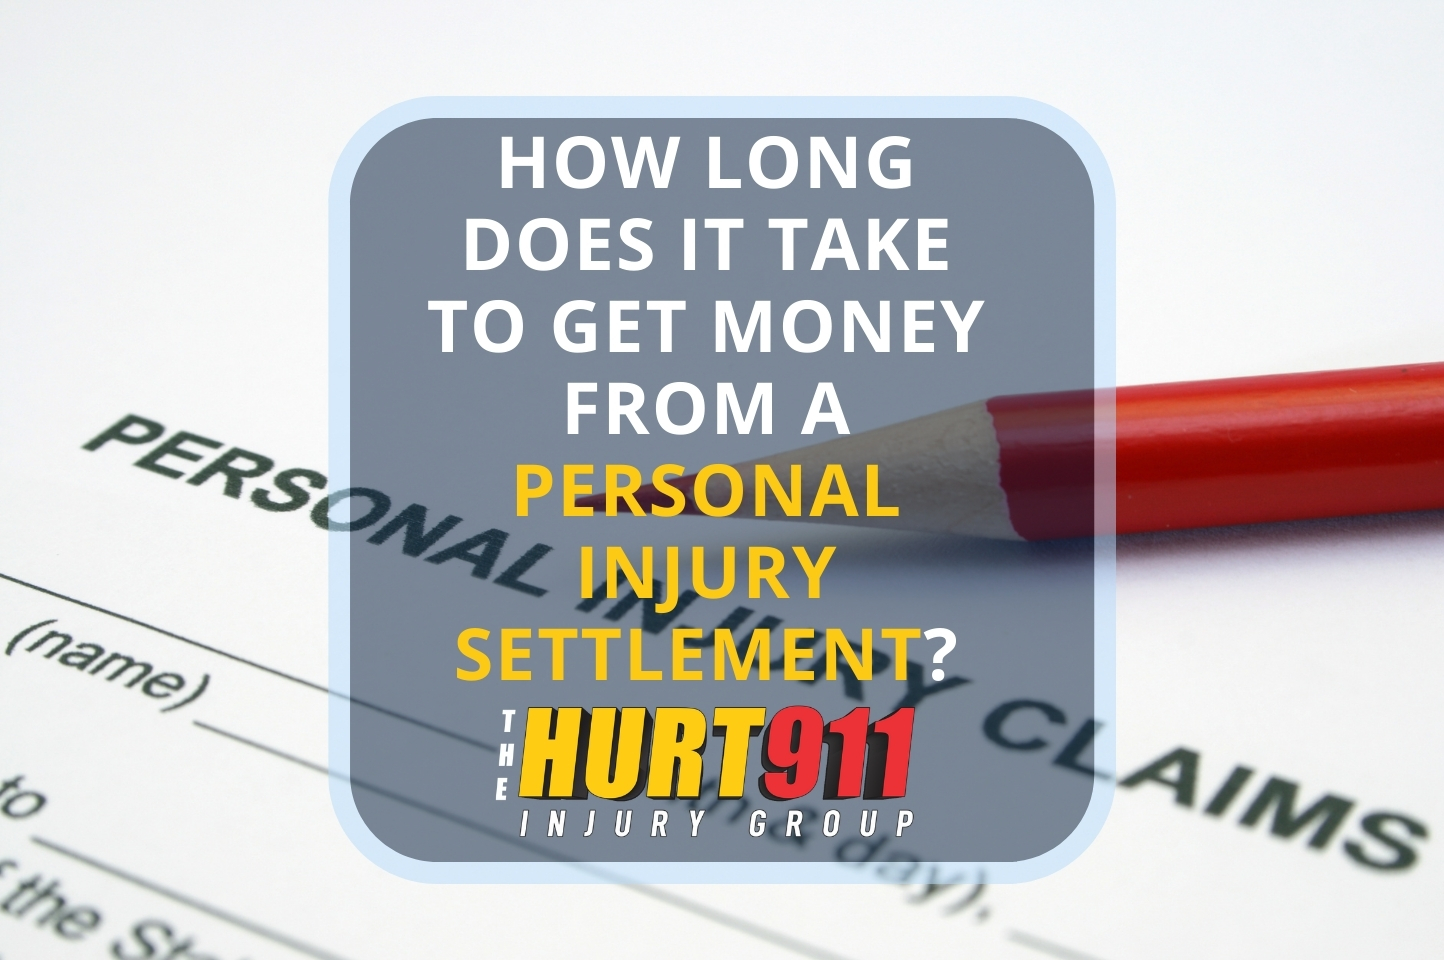 How Long Does it Take to Get Money from a Personal Injury Settlement?